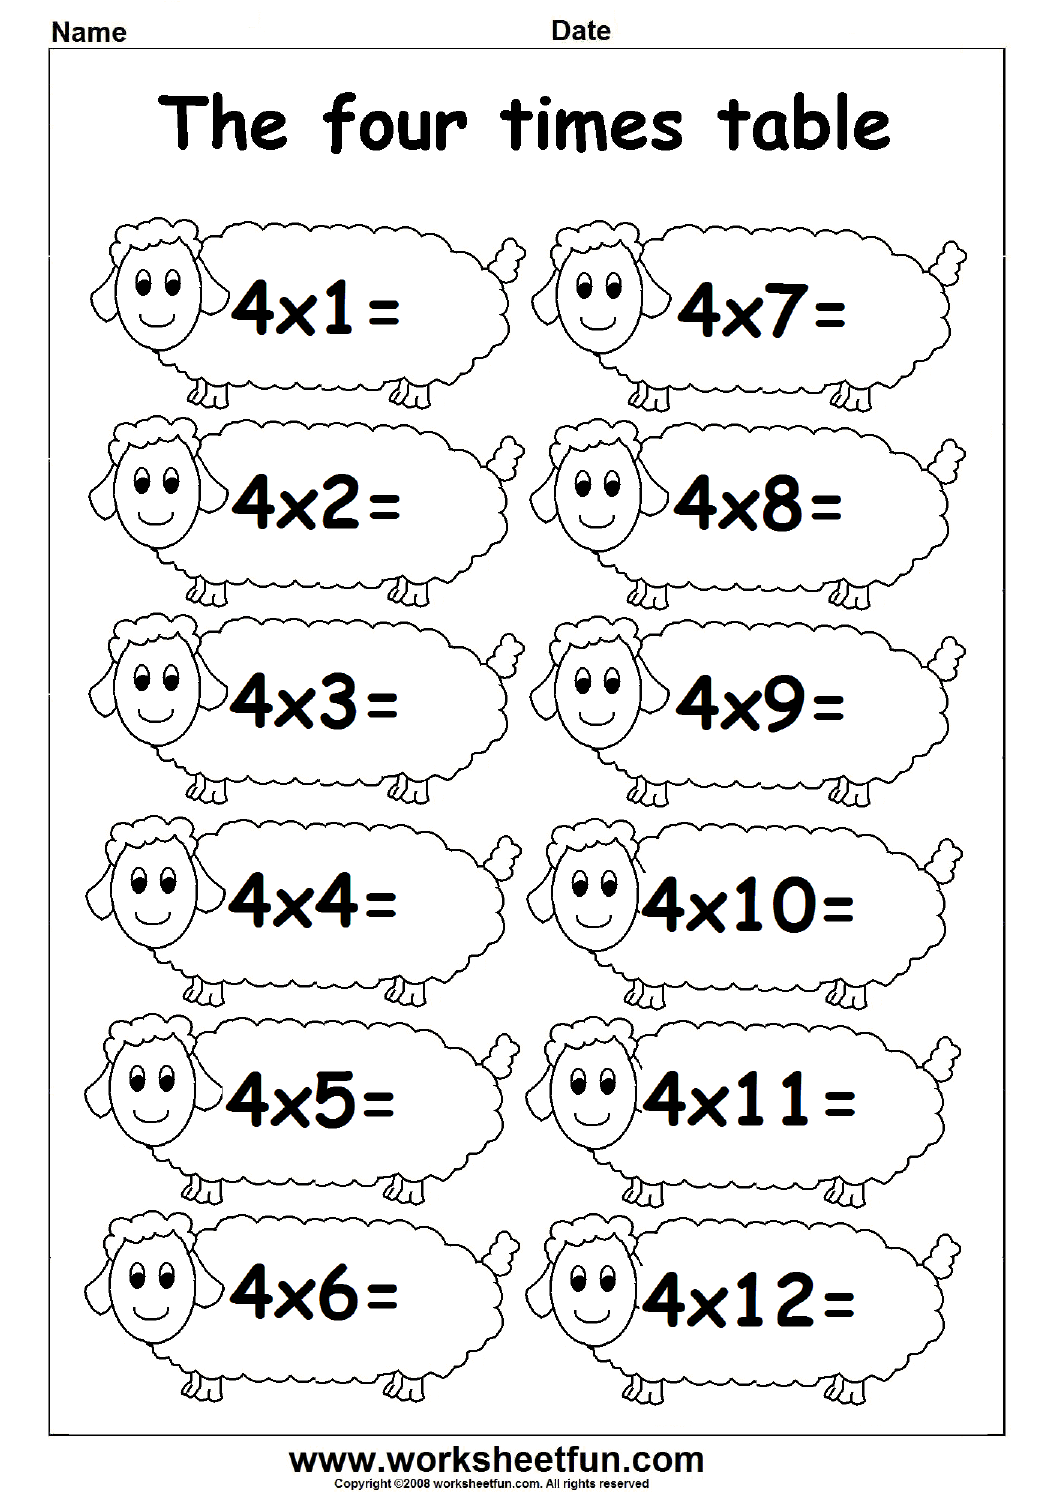 worksheet Two Times Table Worksheet times table 2 free printable worksheets worksheetfun multiplication tables 3 4 three worksheets